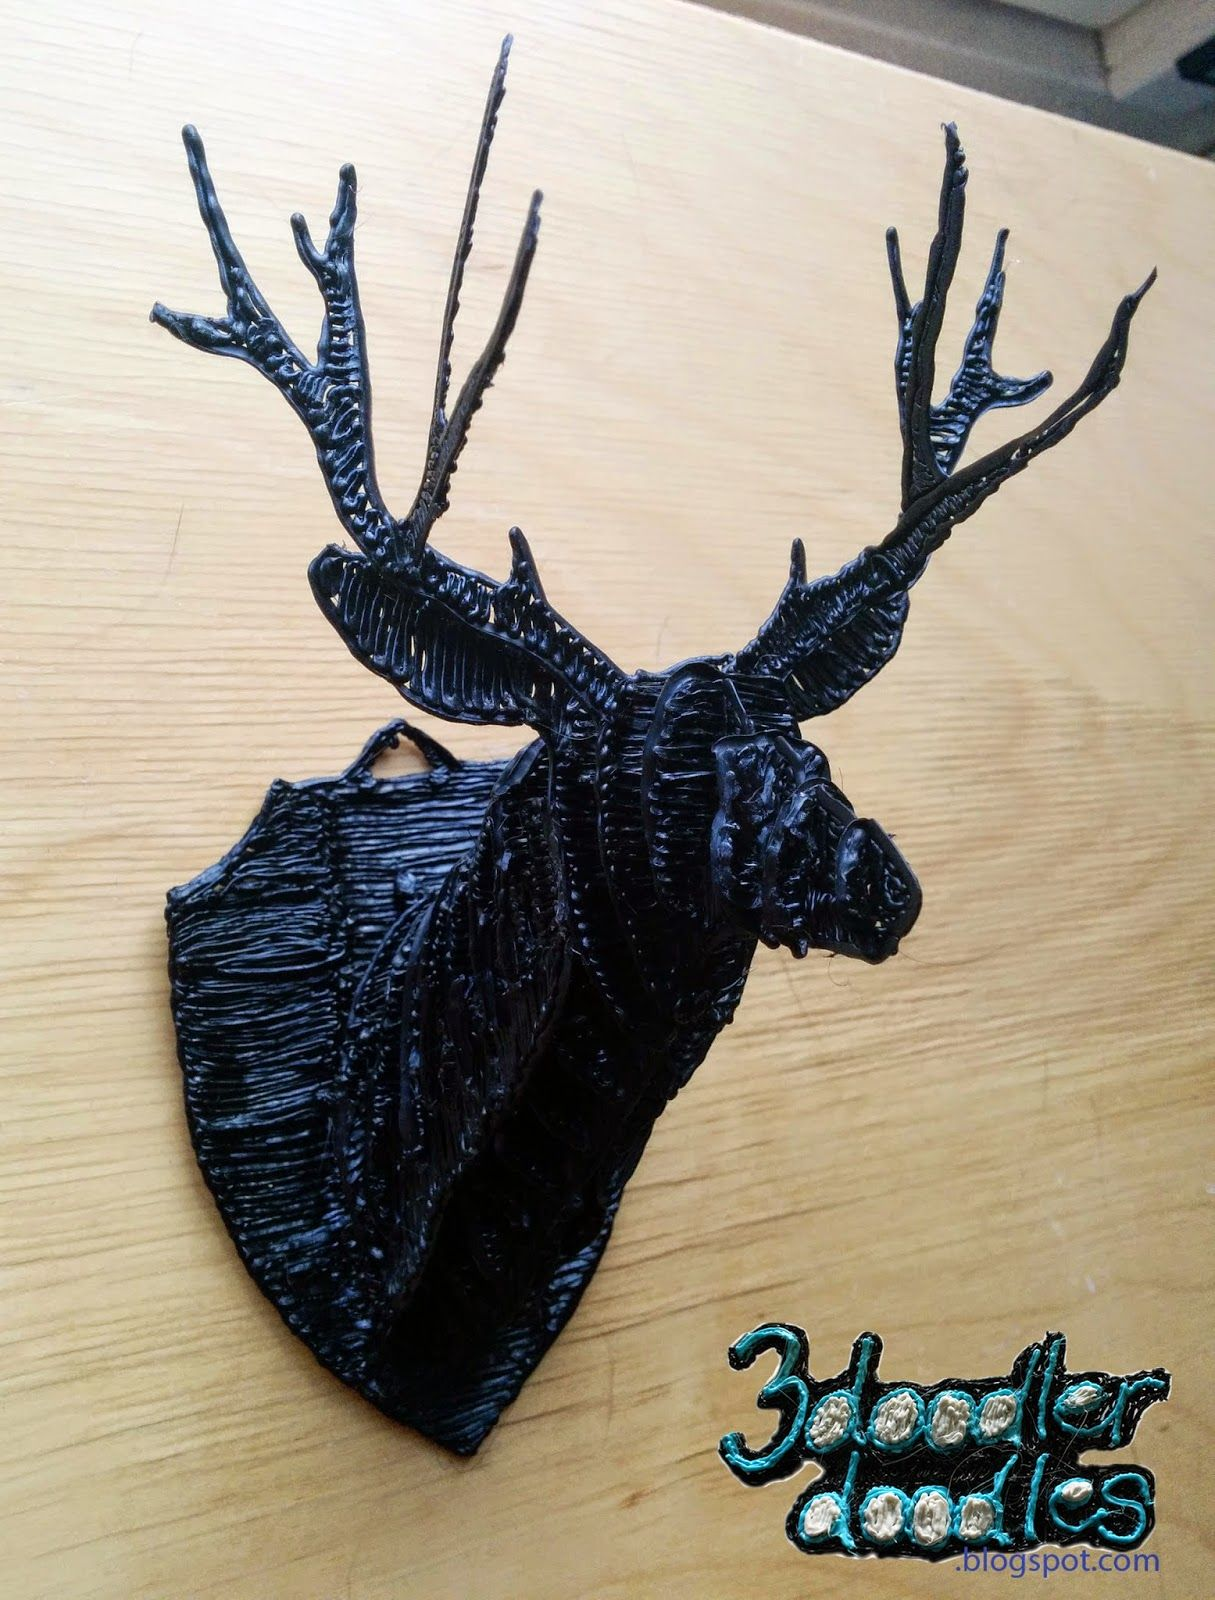 projects ideas dear head. 3Doodler doodles  Just another deer on the wall 3 D Printing Art